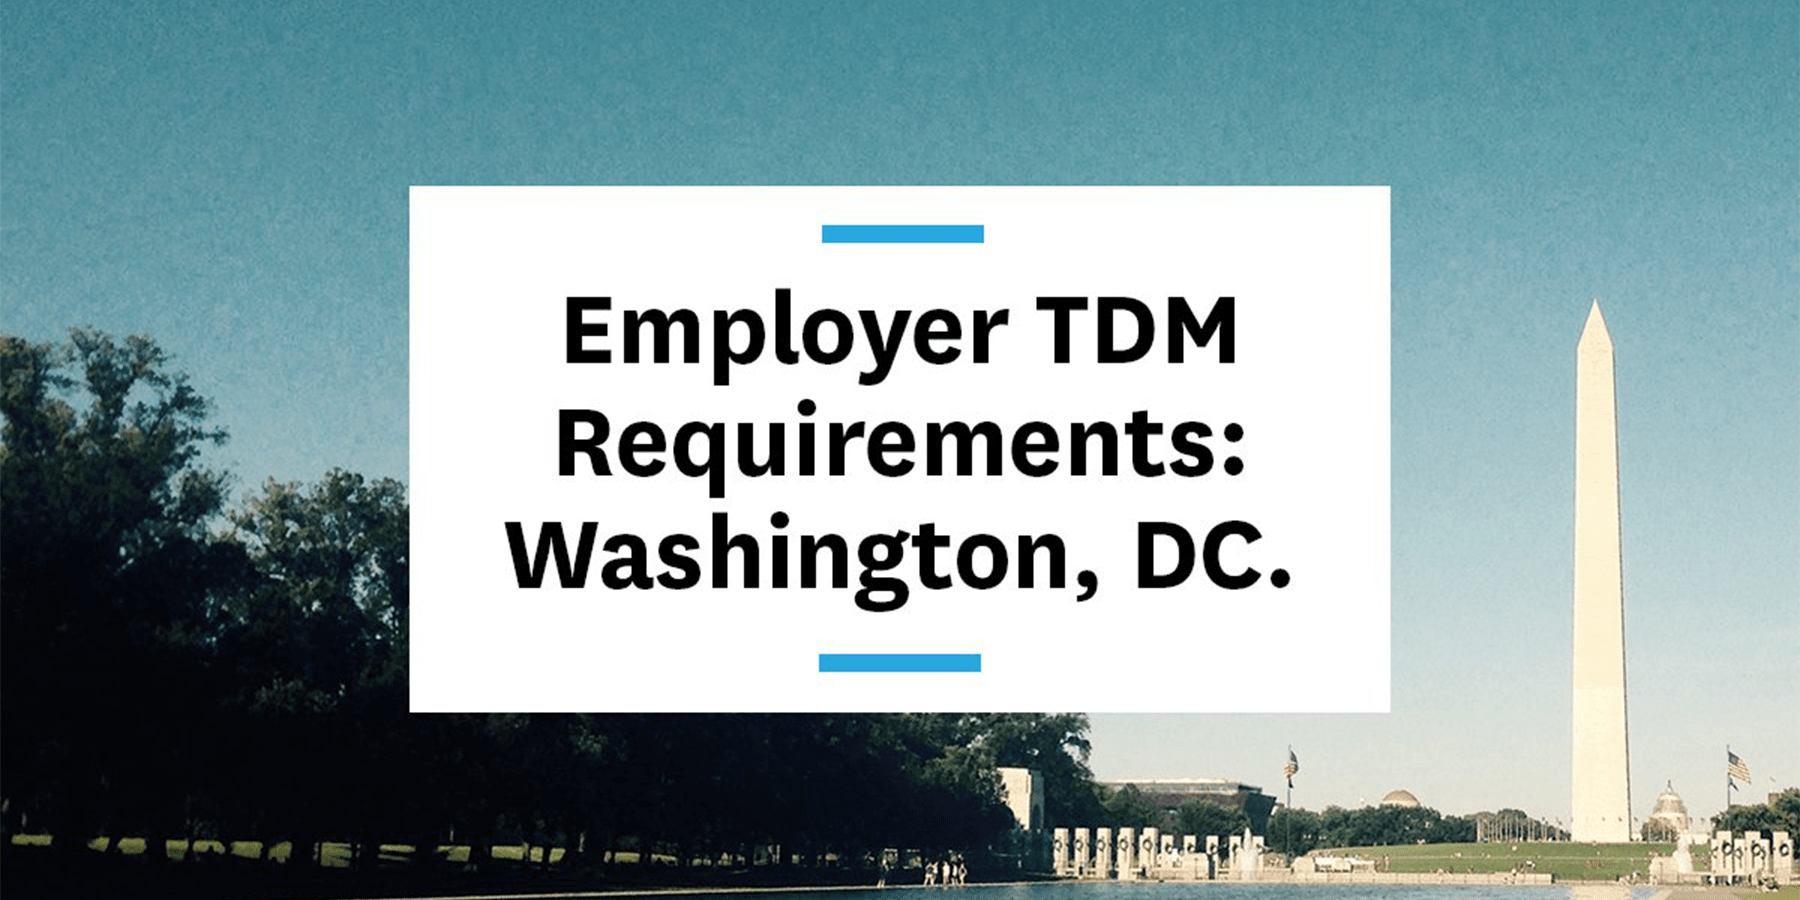 Feature image for employer tdm requirements in Washington DC